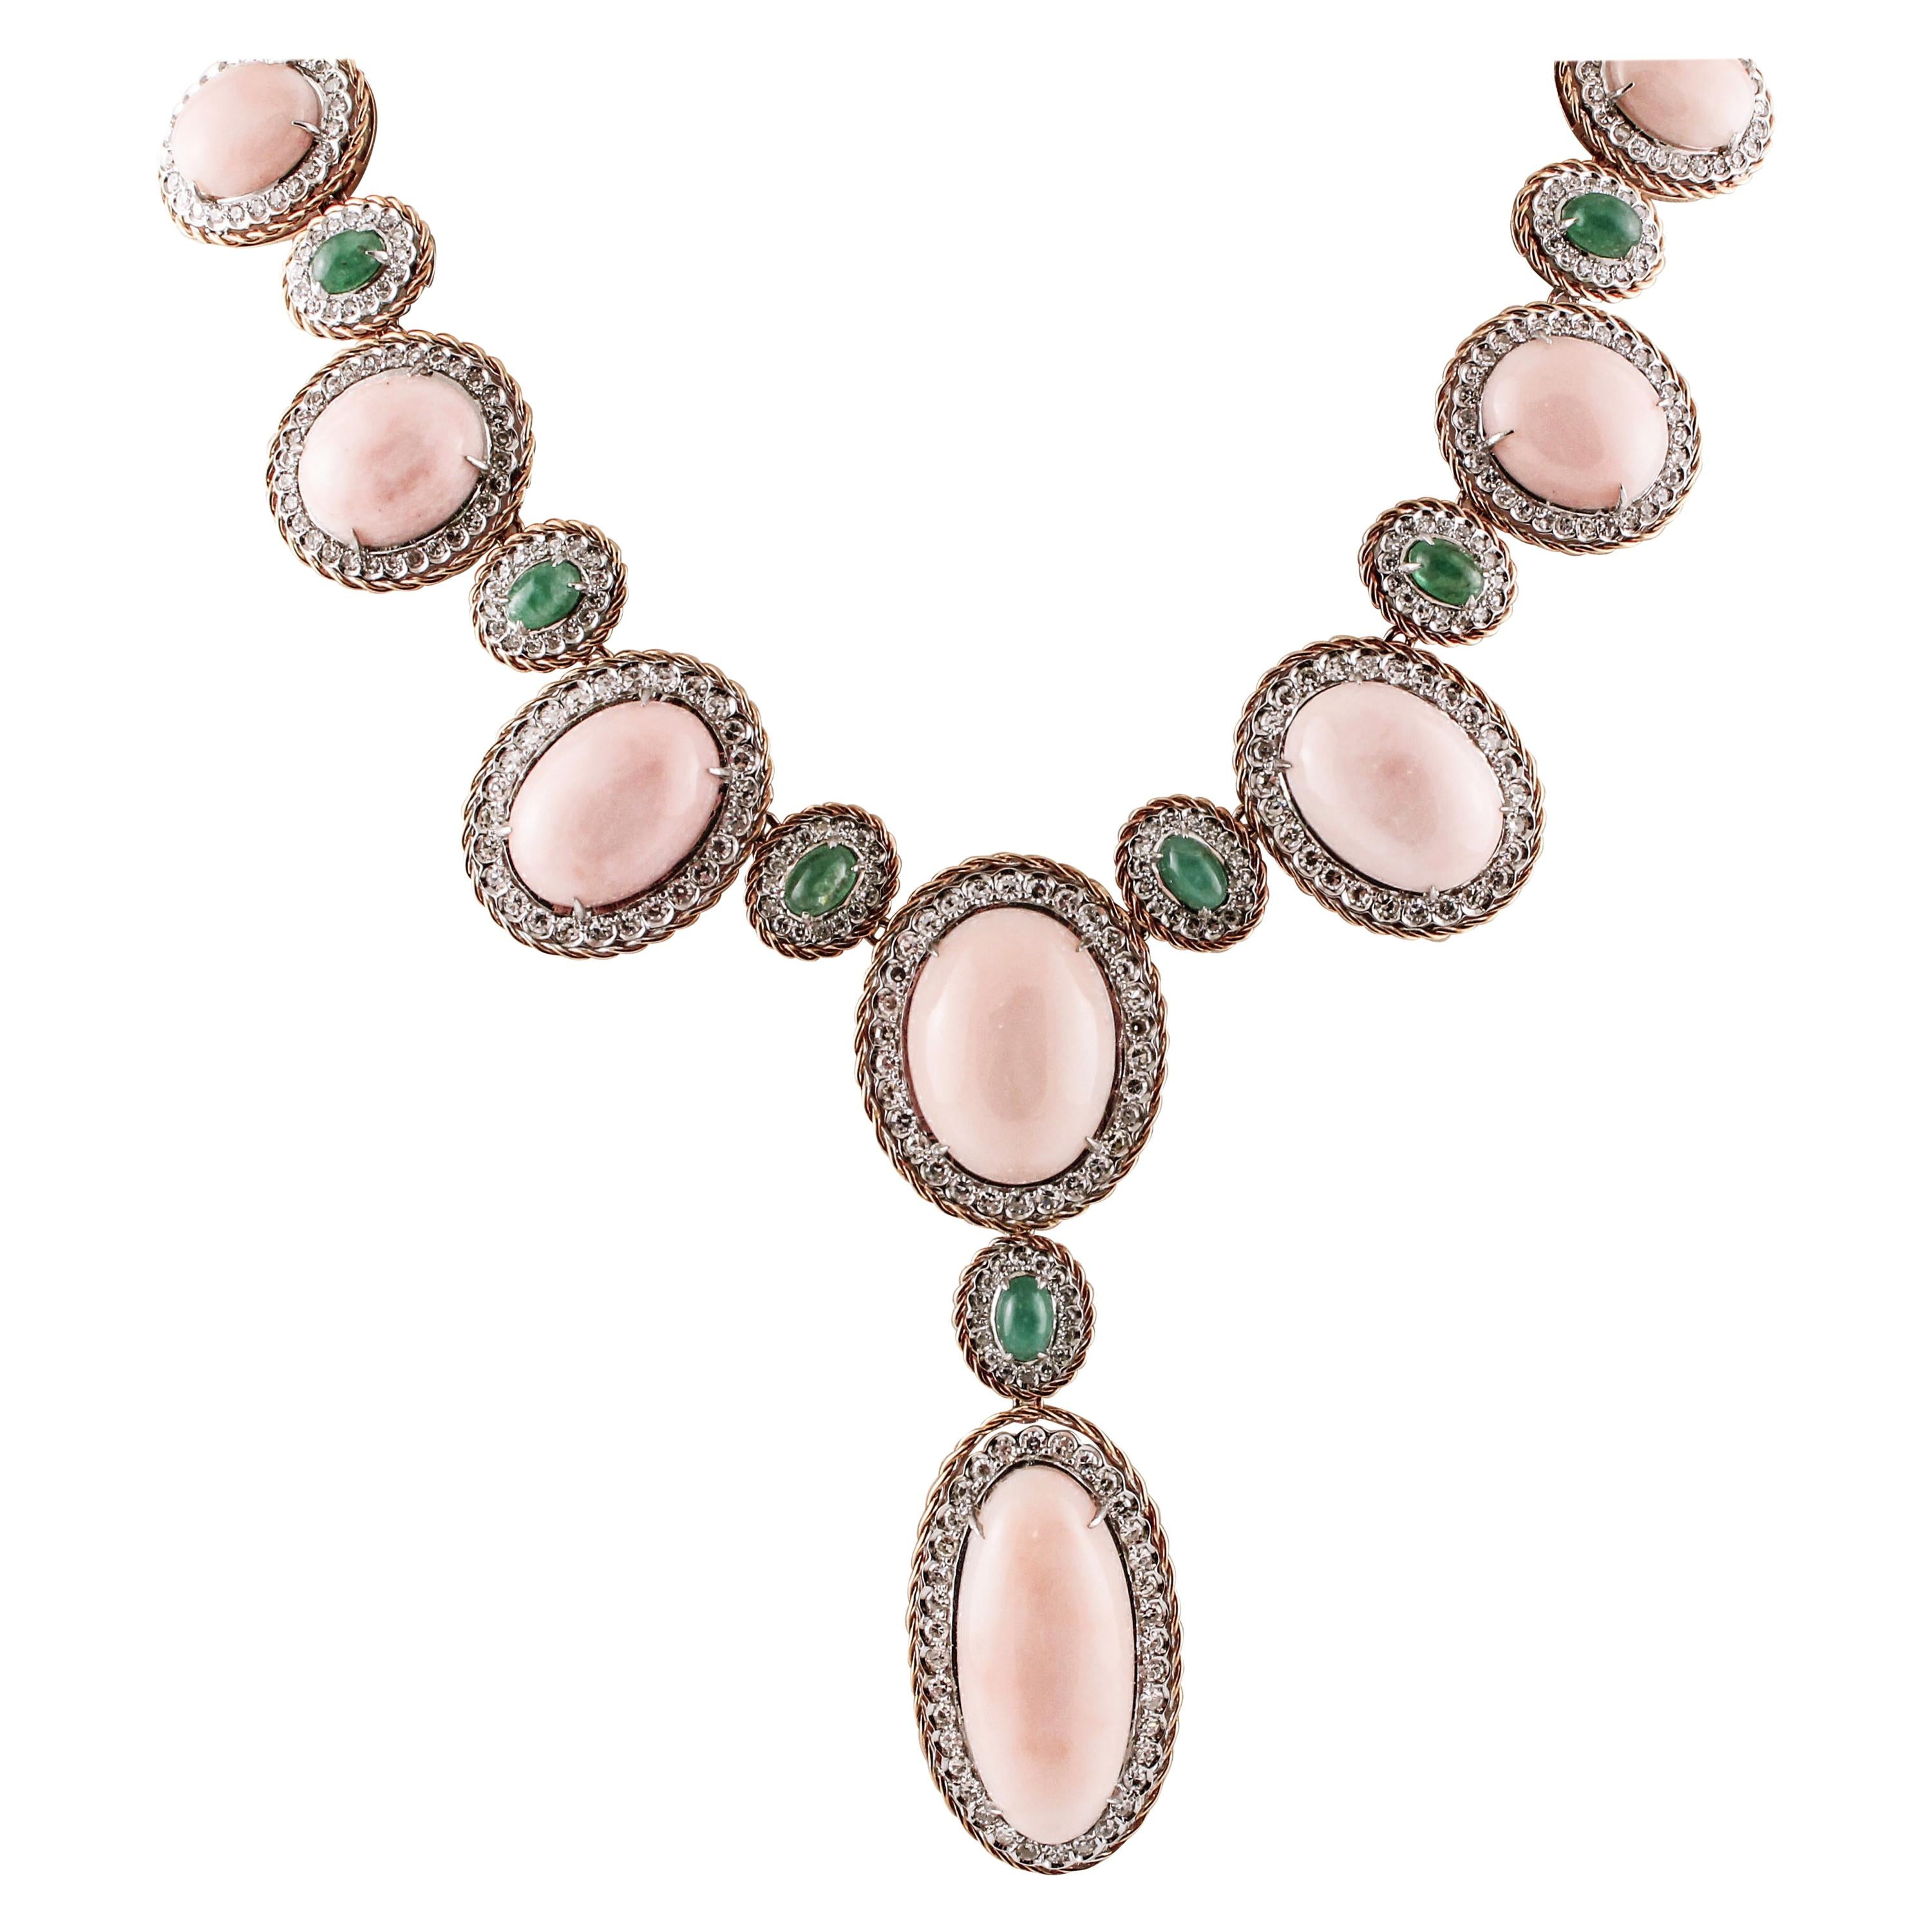 Oval Shape Pink Coral, Diamonds, Emeralds, Rose White Gold Necklace